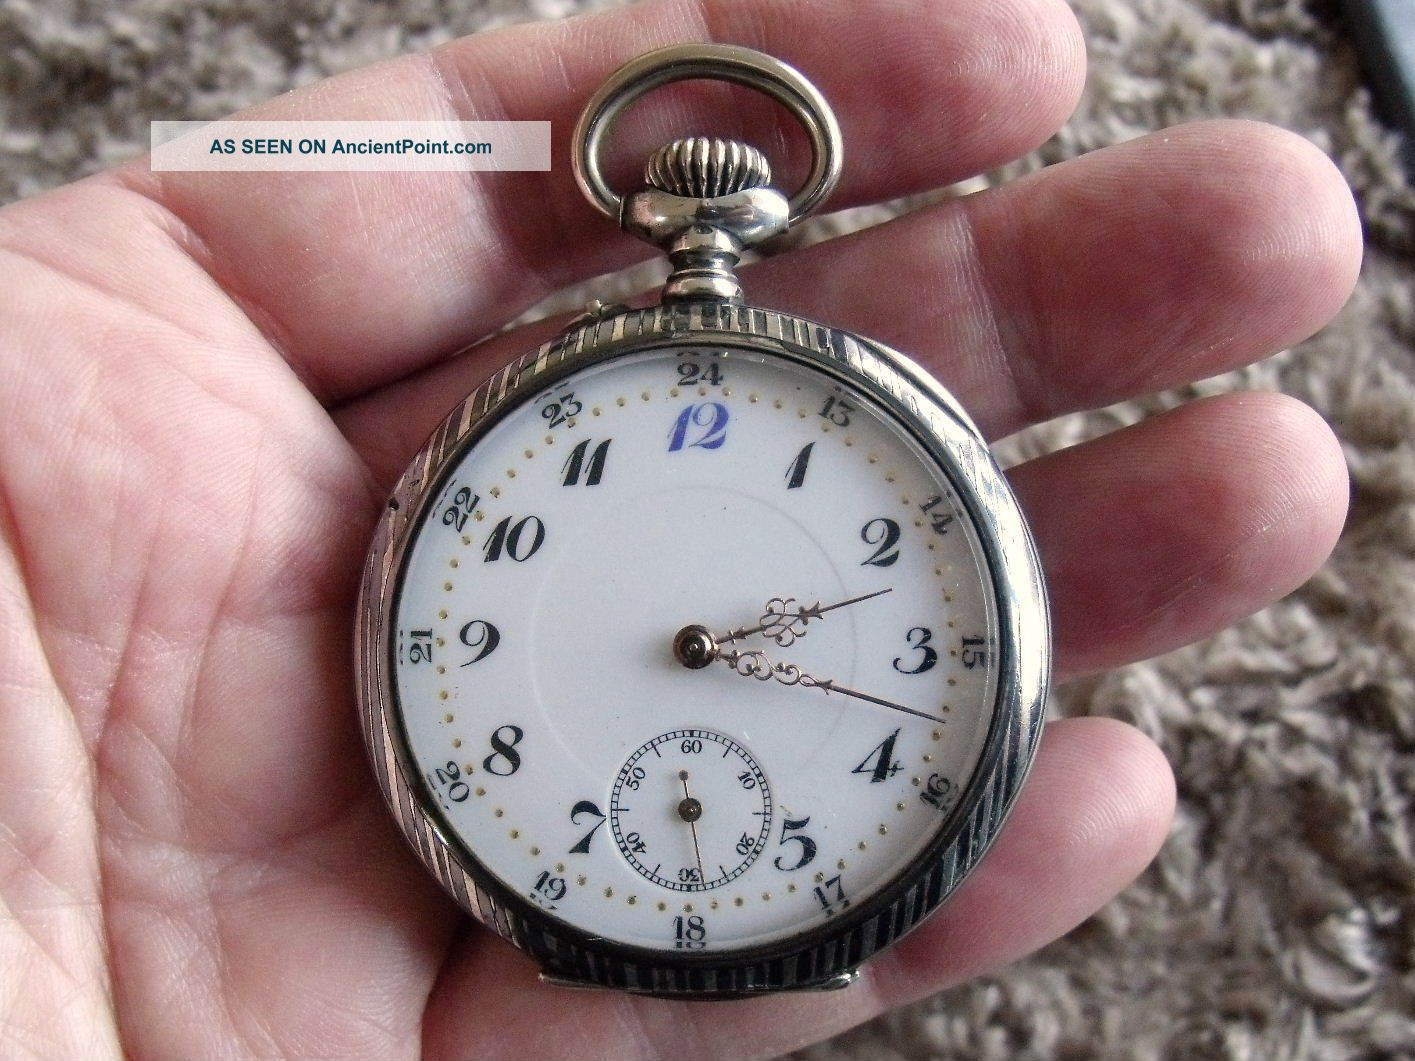 Silver Niello Pocket Watch - Swiss 15 Jewel Movement - C1910 Pocket Watches/ Chains/ Fobs photo